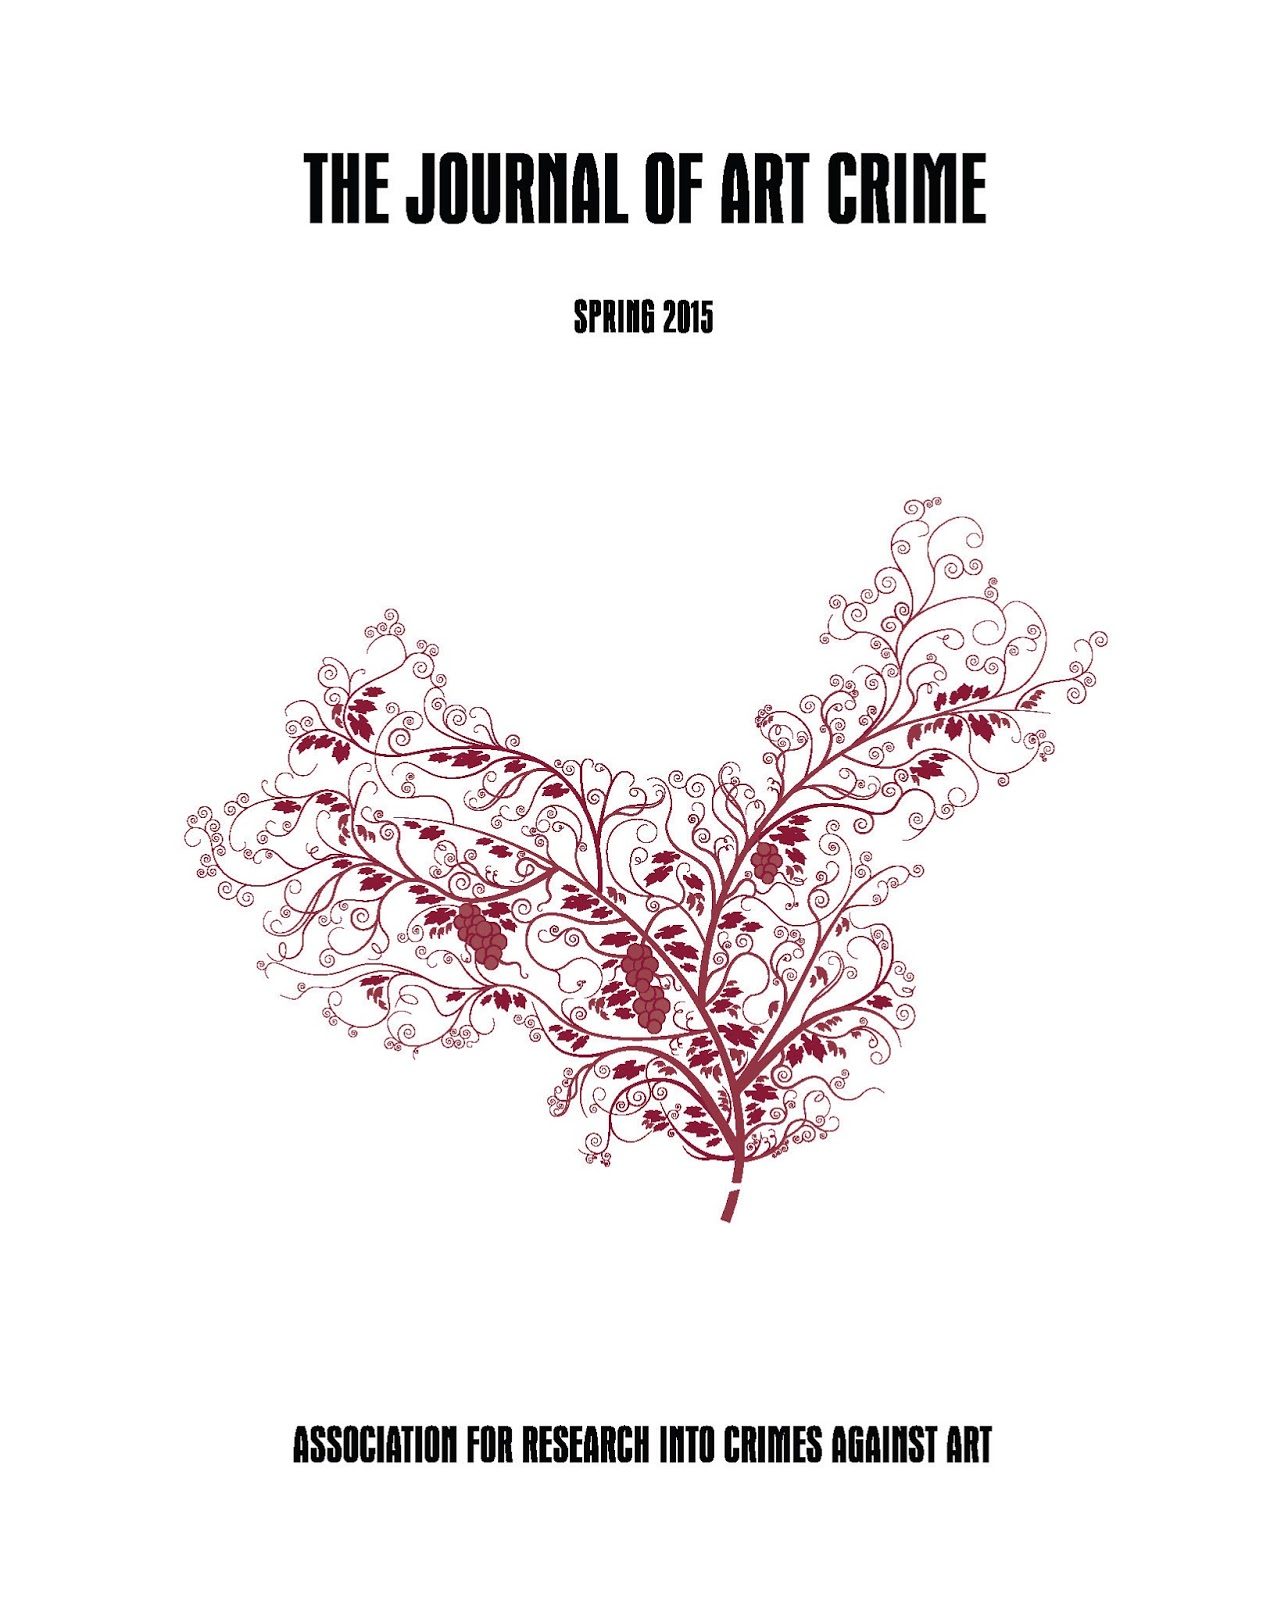 editorial essay toby bull s perspective in the grape war of editorial essay toby bull s perspective in the grape war of wine fraud and how science is fighting back in the spring 2015 issue of the journal of